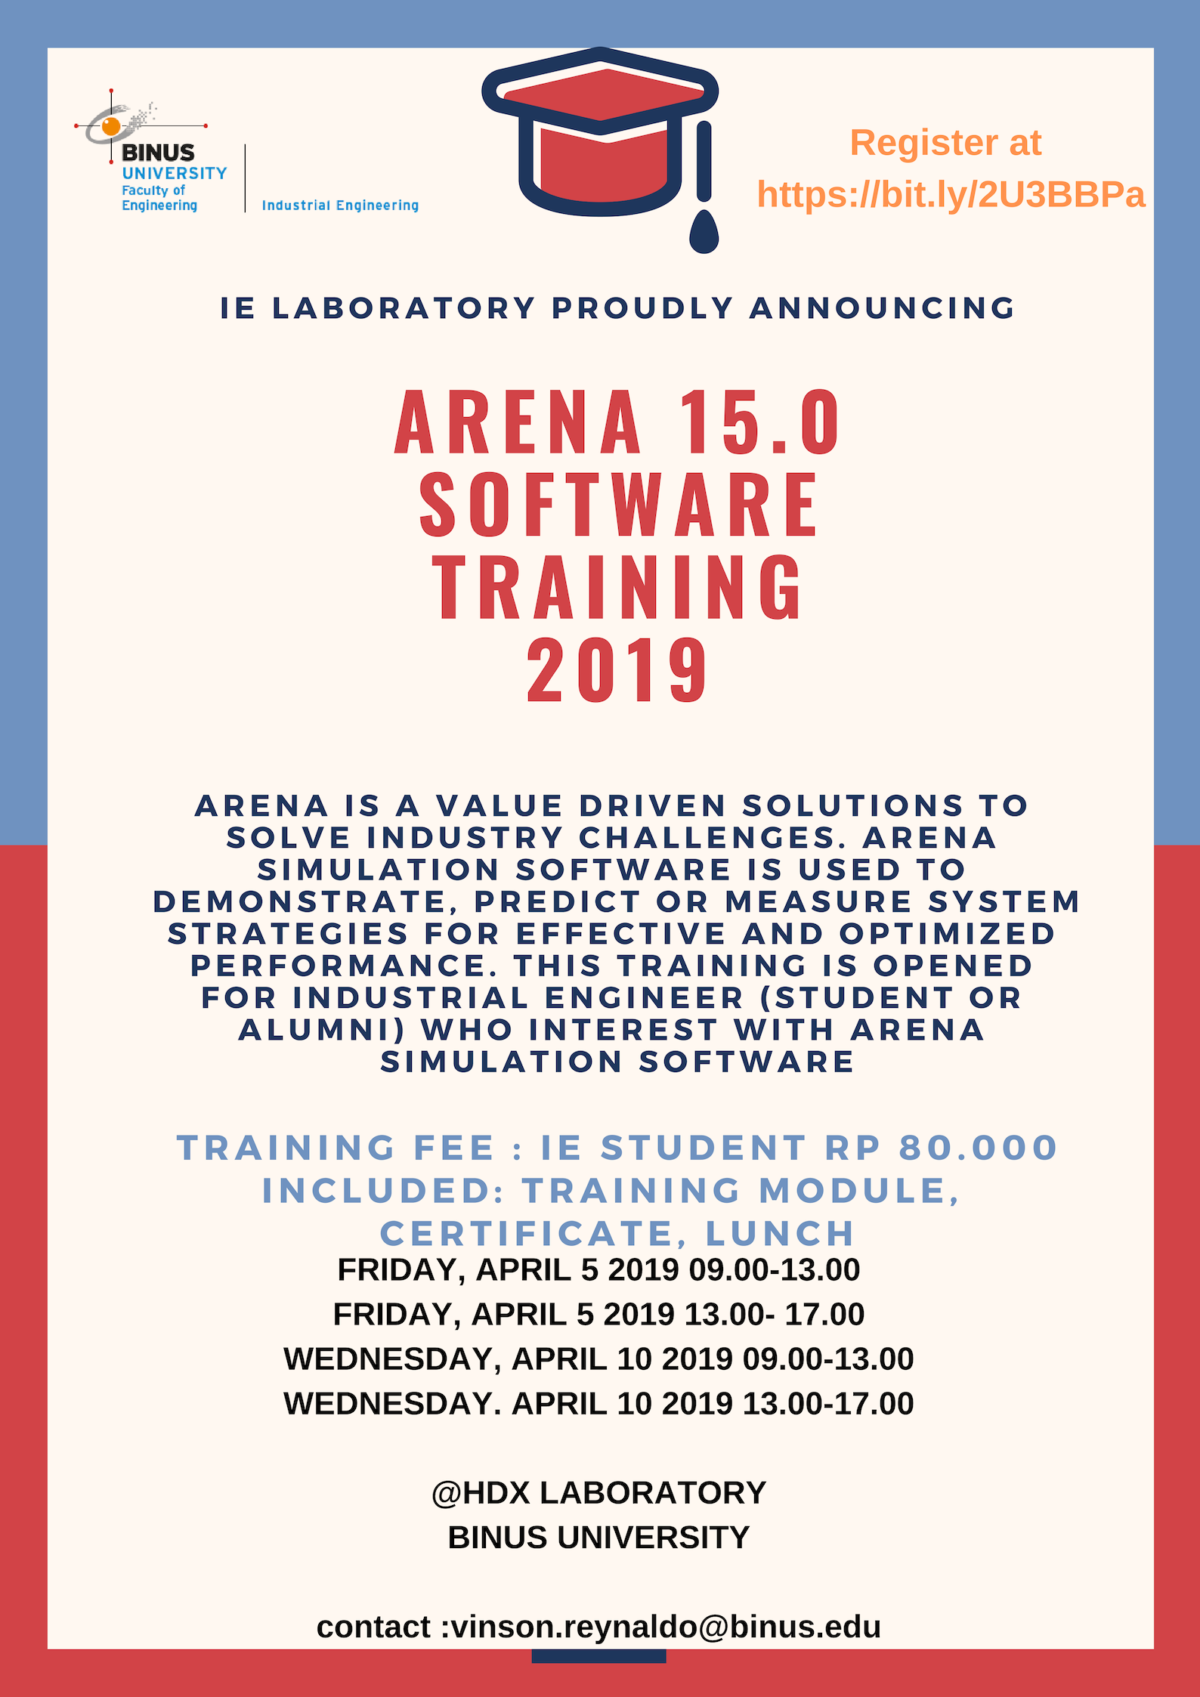 ARENA 15.0 Software Training 2019